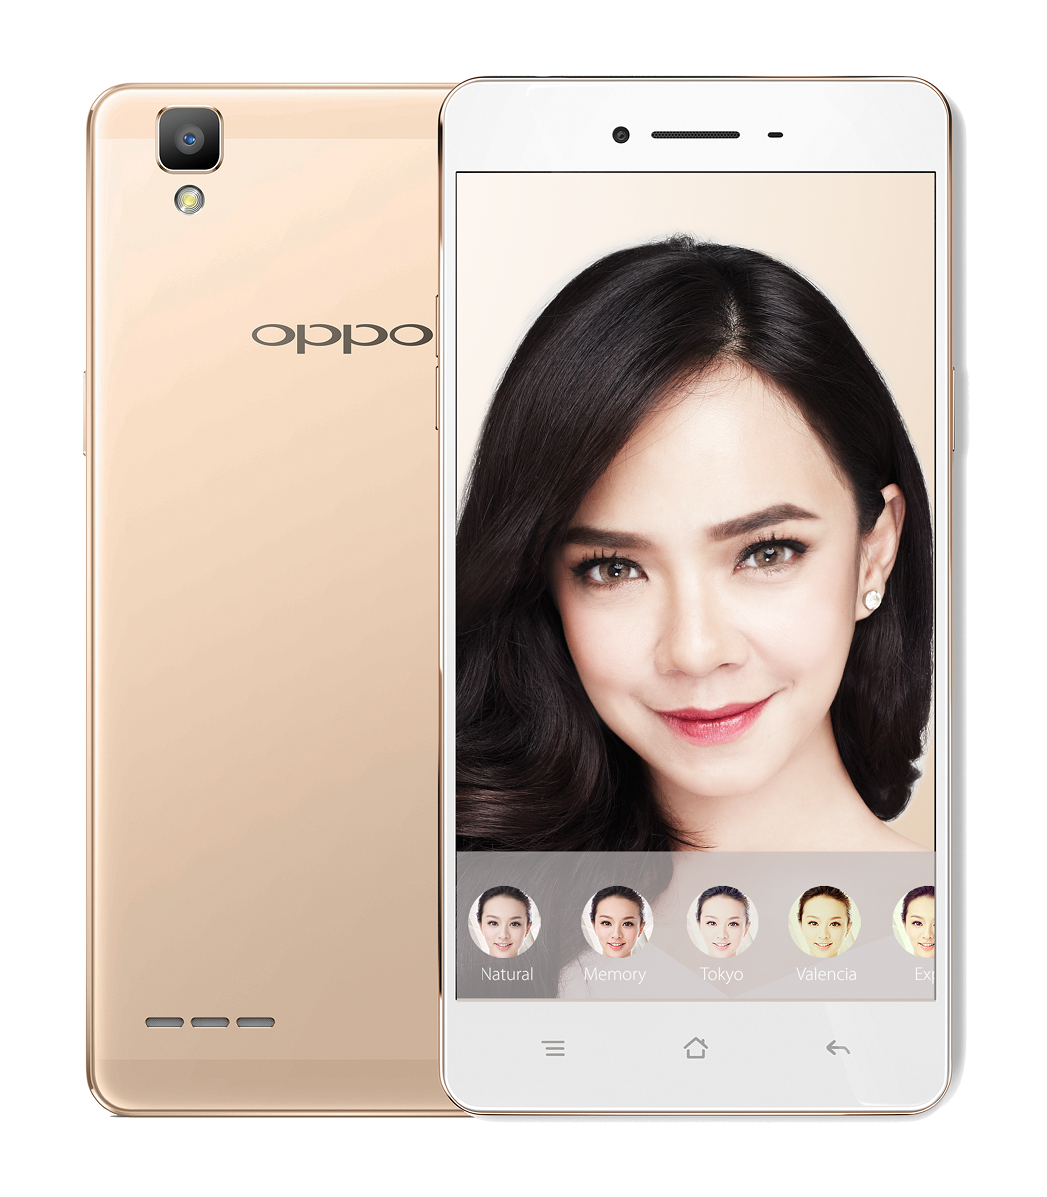 OPPO's Selfie Expert, F1 has a built-in Beautify 3.0 that offers a wide range of mood filters and seamless blemishes removing with instant highlight on subject's features